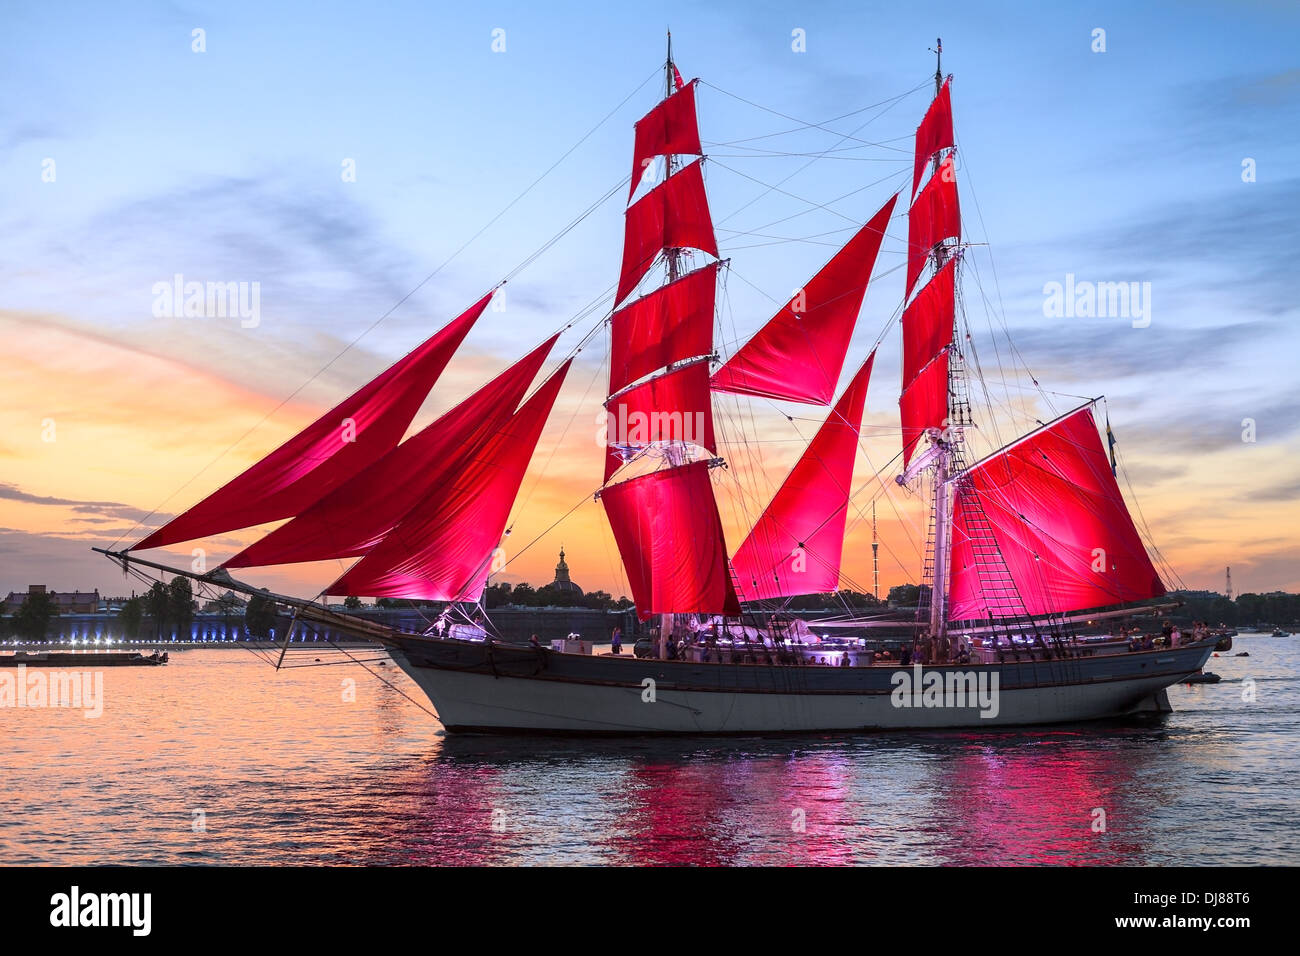 Celebration Scarlet Sails show during the White Nights Festival, St. Petersburg, Russia. Vessel over sunset sky - Stock Image